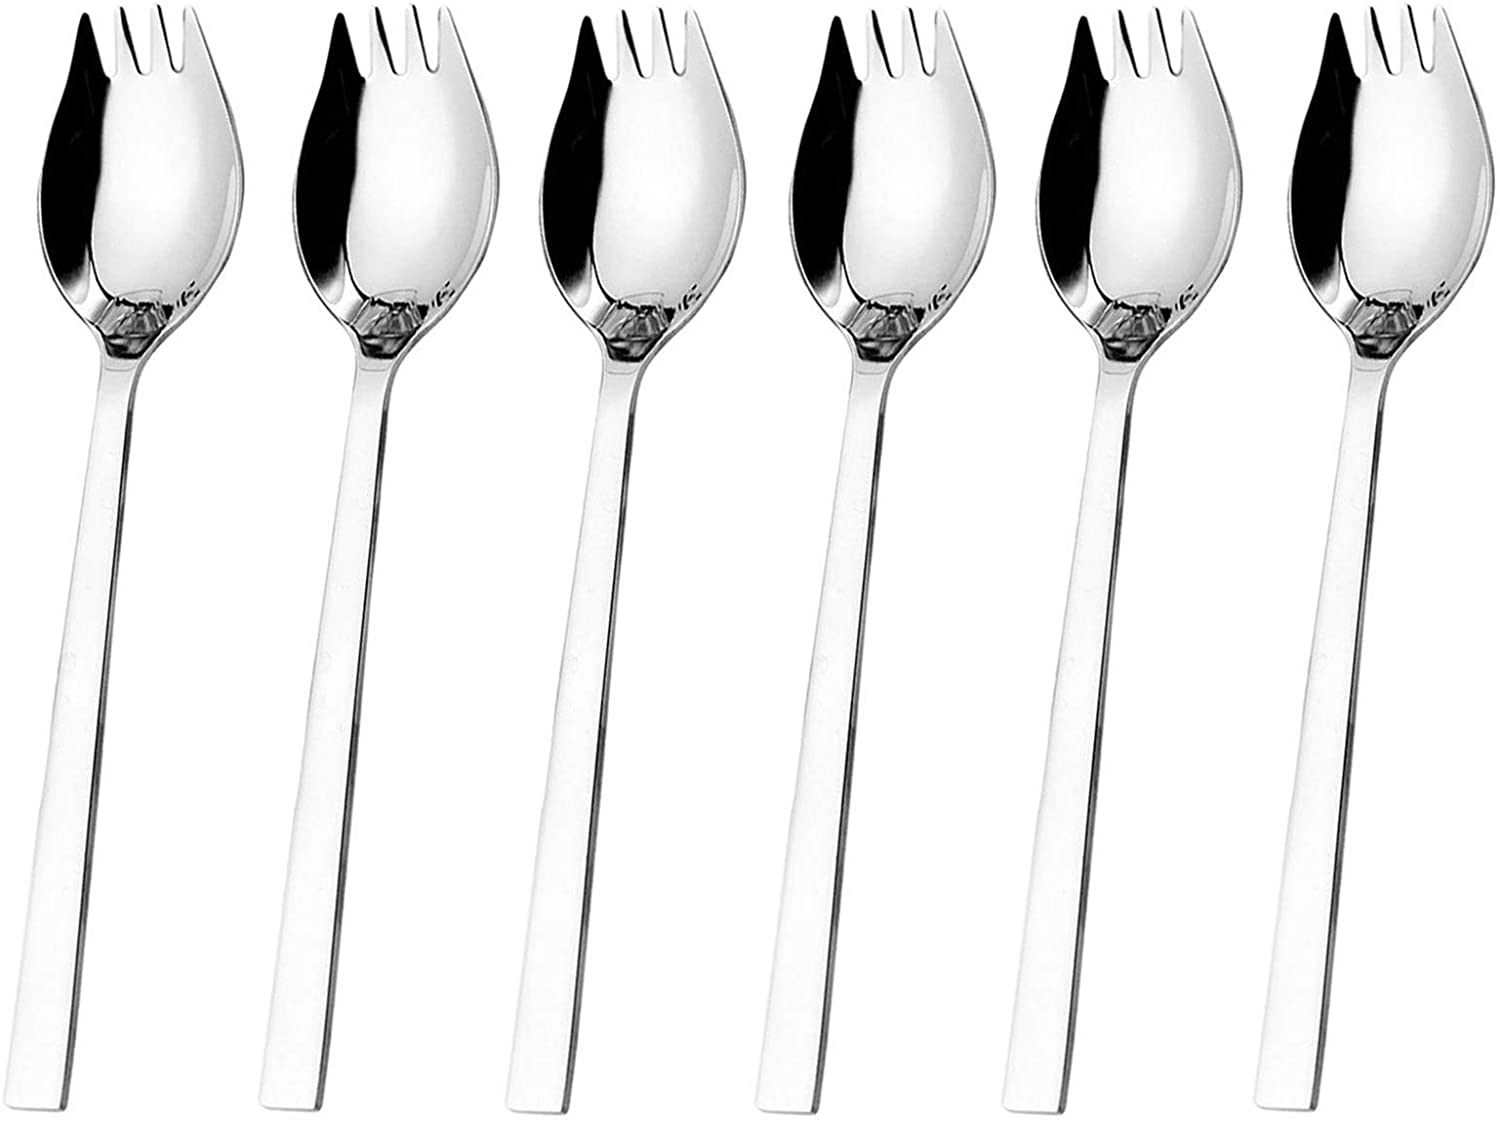 Hiware Sporks 6-pack 18/10 Stainless Steel Sporks for Everyday Household Use, 7.6-Inch / 1.6-Ounce/Ice Cream Spoon & Salad Forks, Fruit Appetizer Dessert